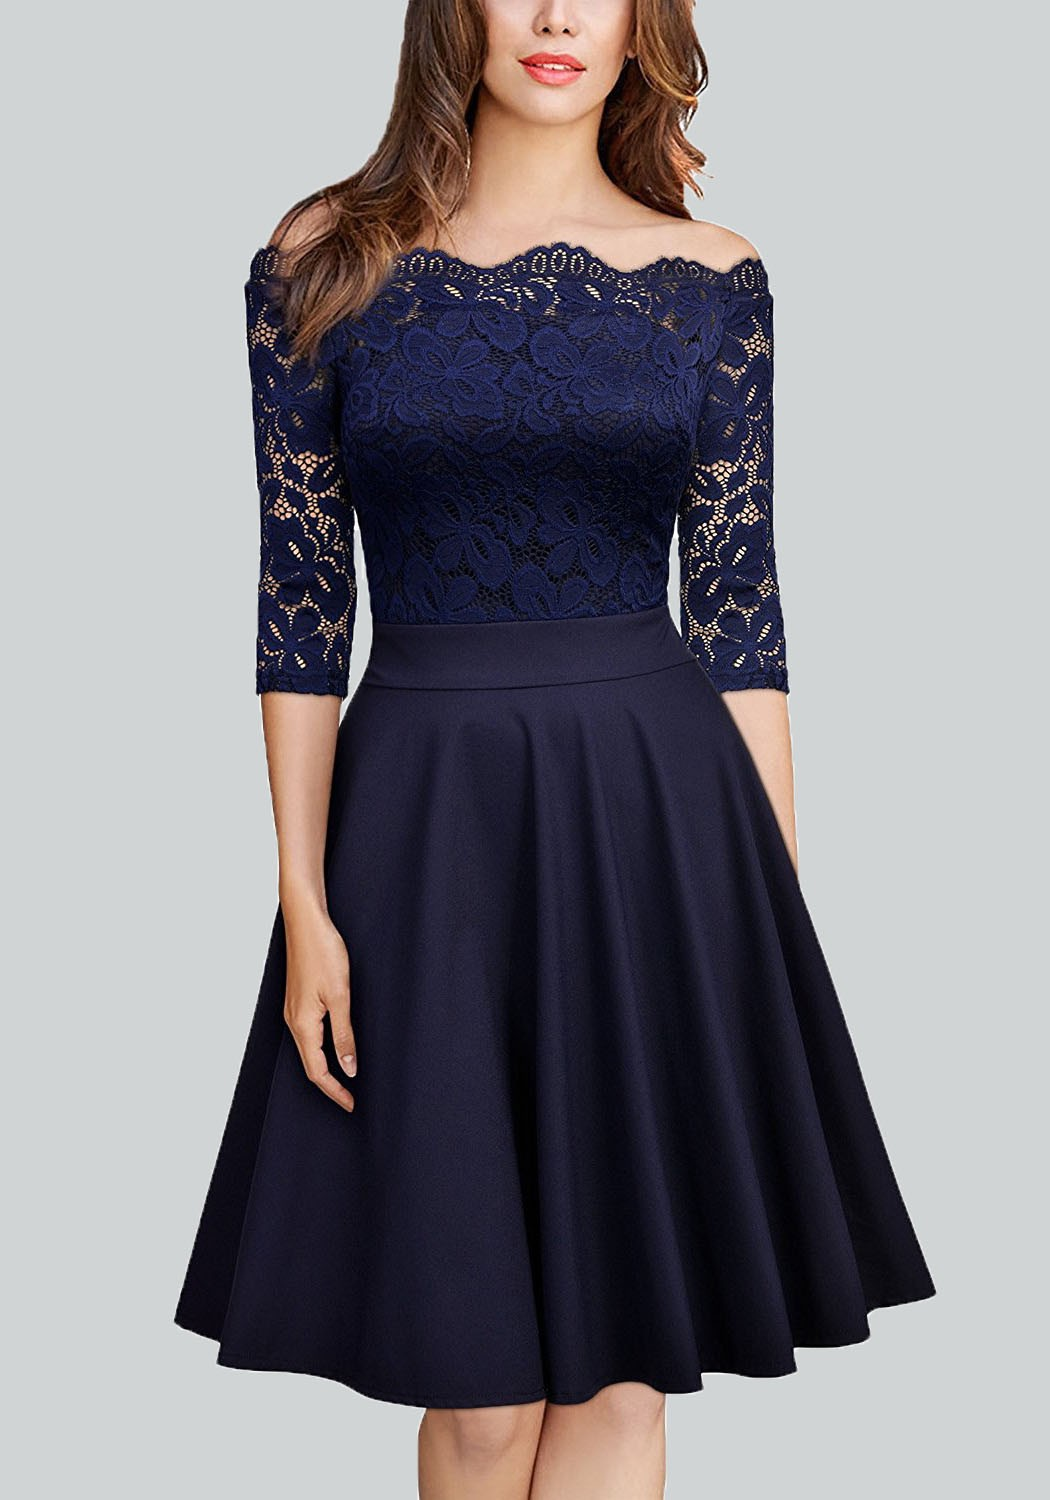 62540310002c Navy Blue Pleated Lace Off Shoulder Backless 3/4 Sleeve Homecoming Party  Midi Dress - Midi Dresses - Dresses